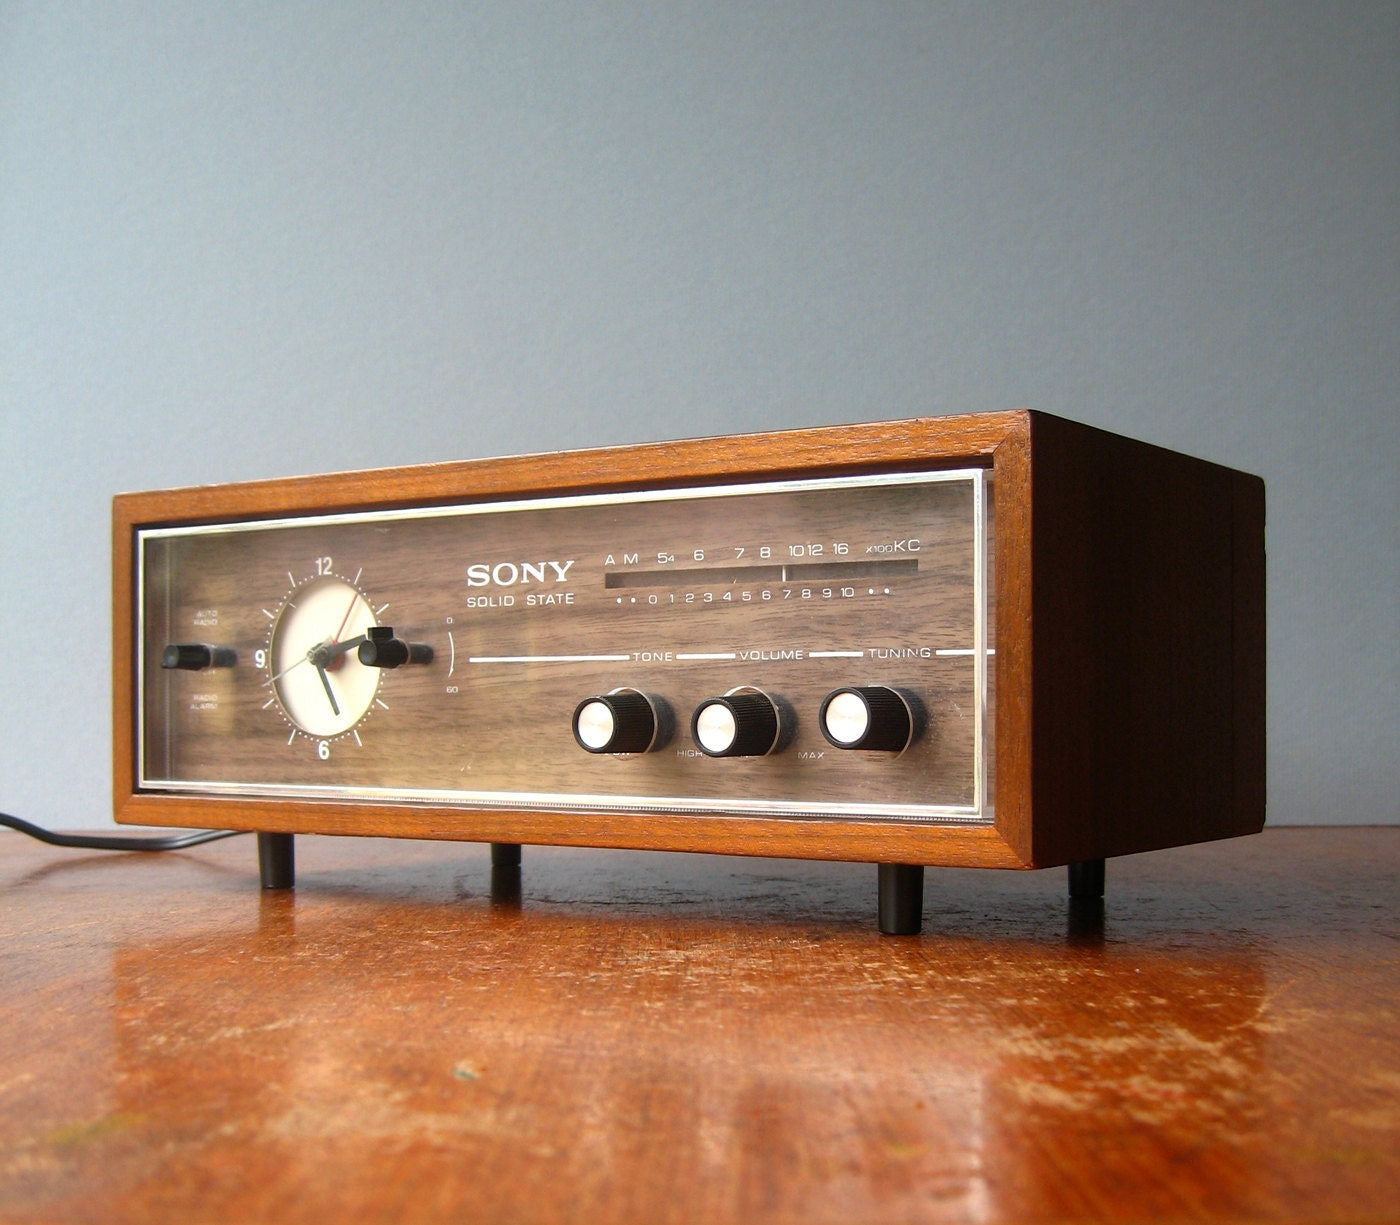 Coffee Maker Alarm Clock Radio : Vintage Sony Radio Alarm Clock